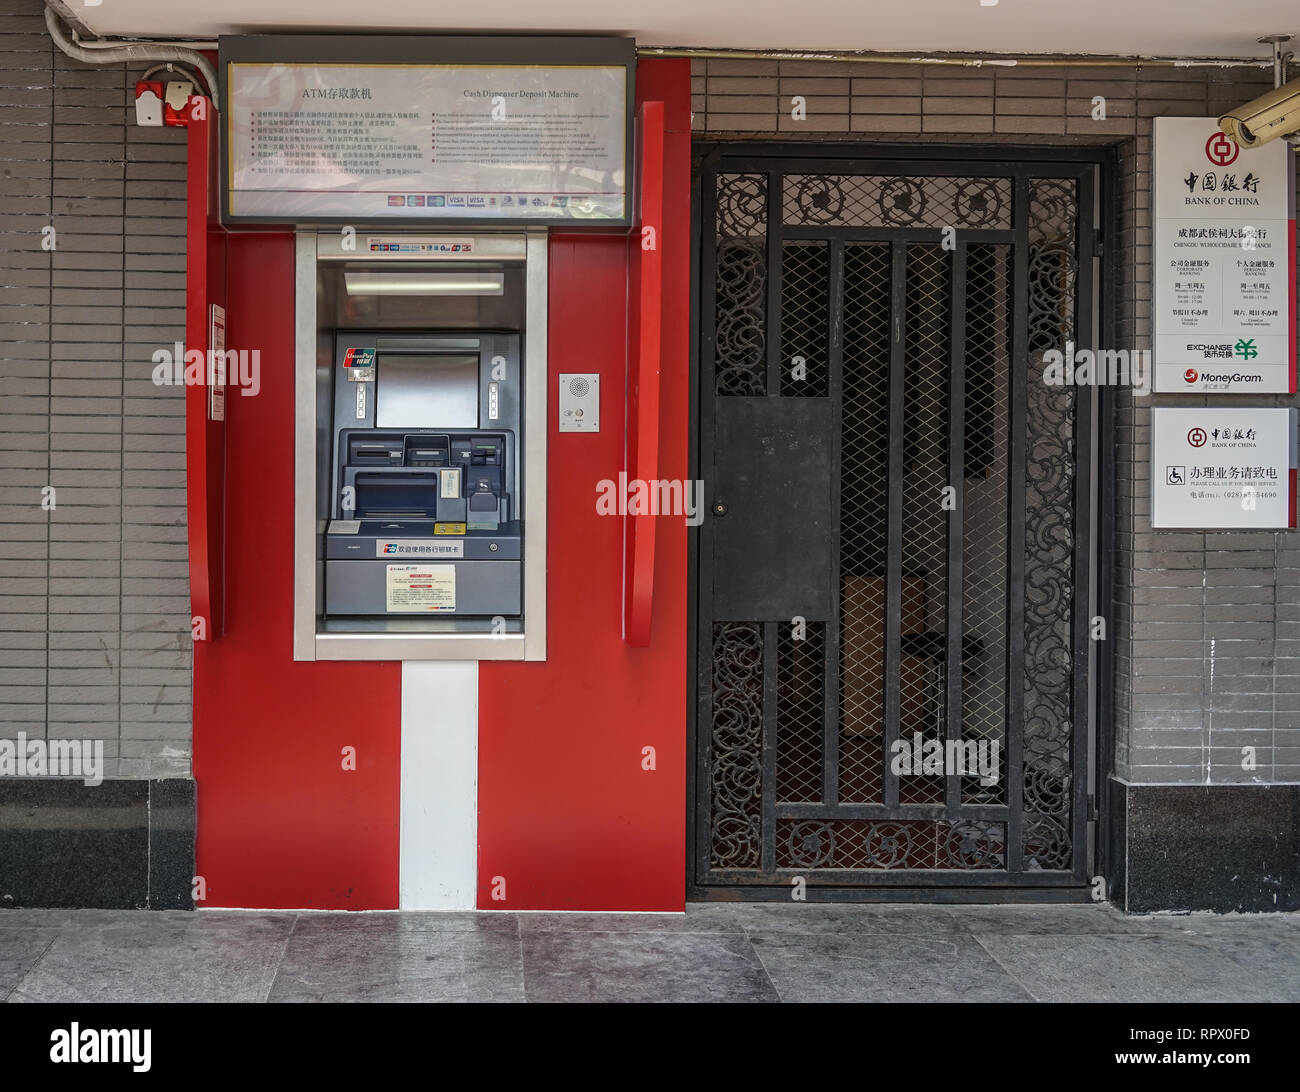 Chengdu, China - Aug 20, 2016. ATM booth in Chengdu, China. Chengdu is one of the three most populous cities in Western China (the other two are Chong - Stock Image